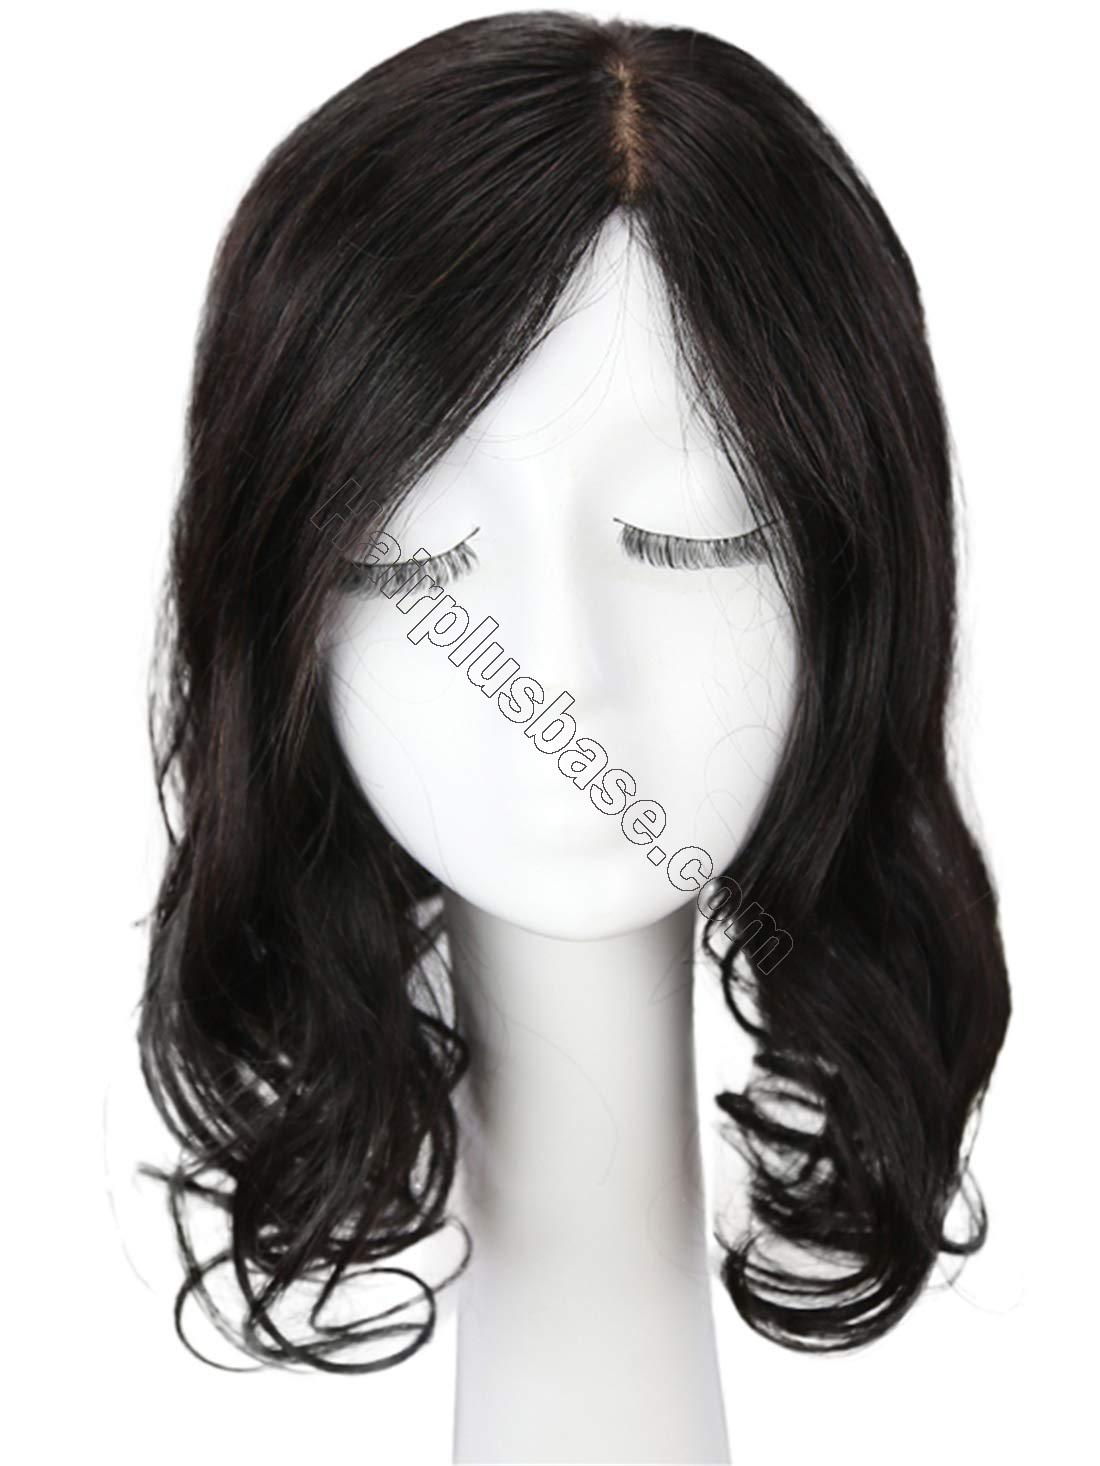 Clip in Wavy Human Hair Toppers Hairpiece for Women, 6.3 Inch x 6 Inch Thick Silk Base Crown Topper for Thinning Hair, Free Part 2